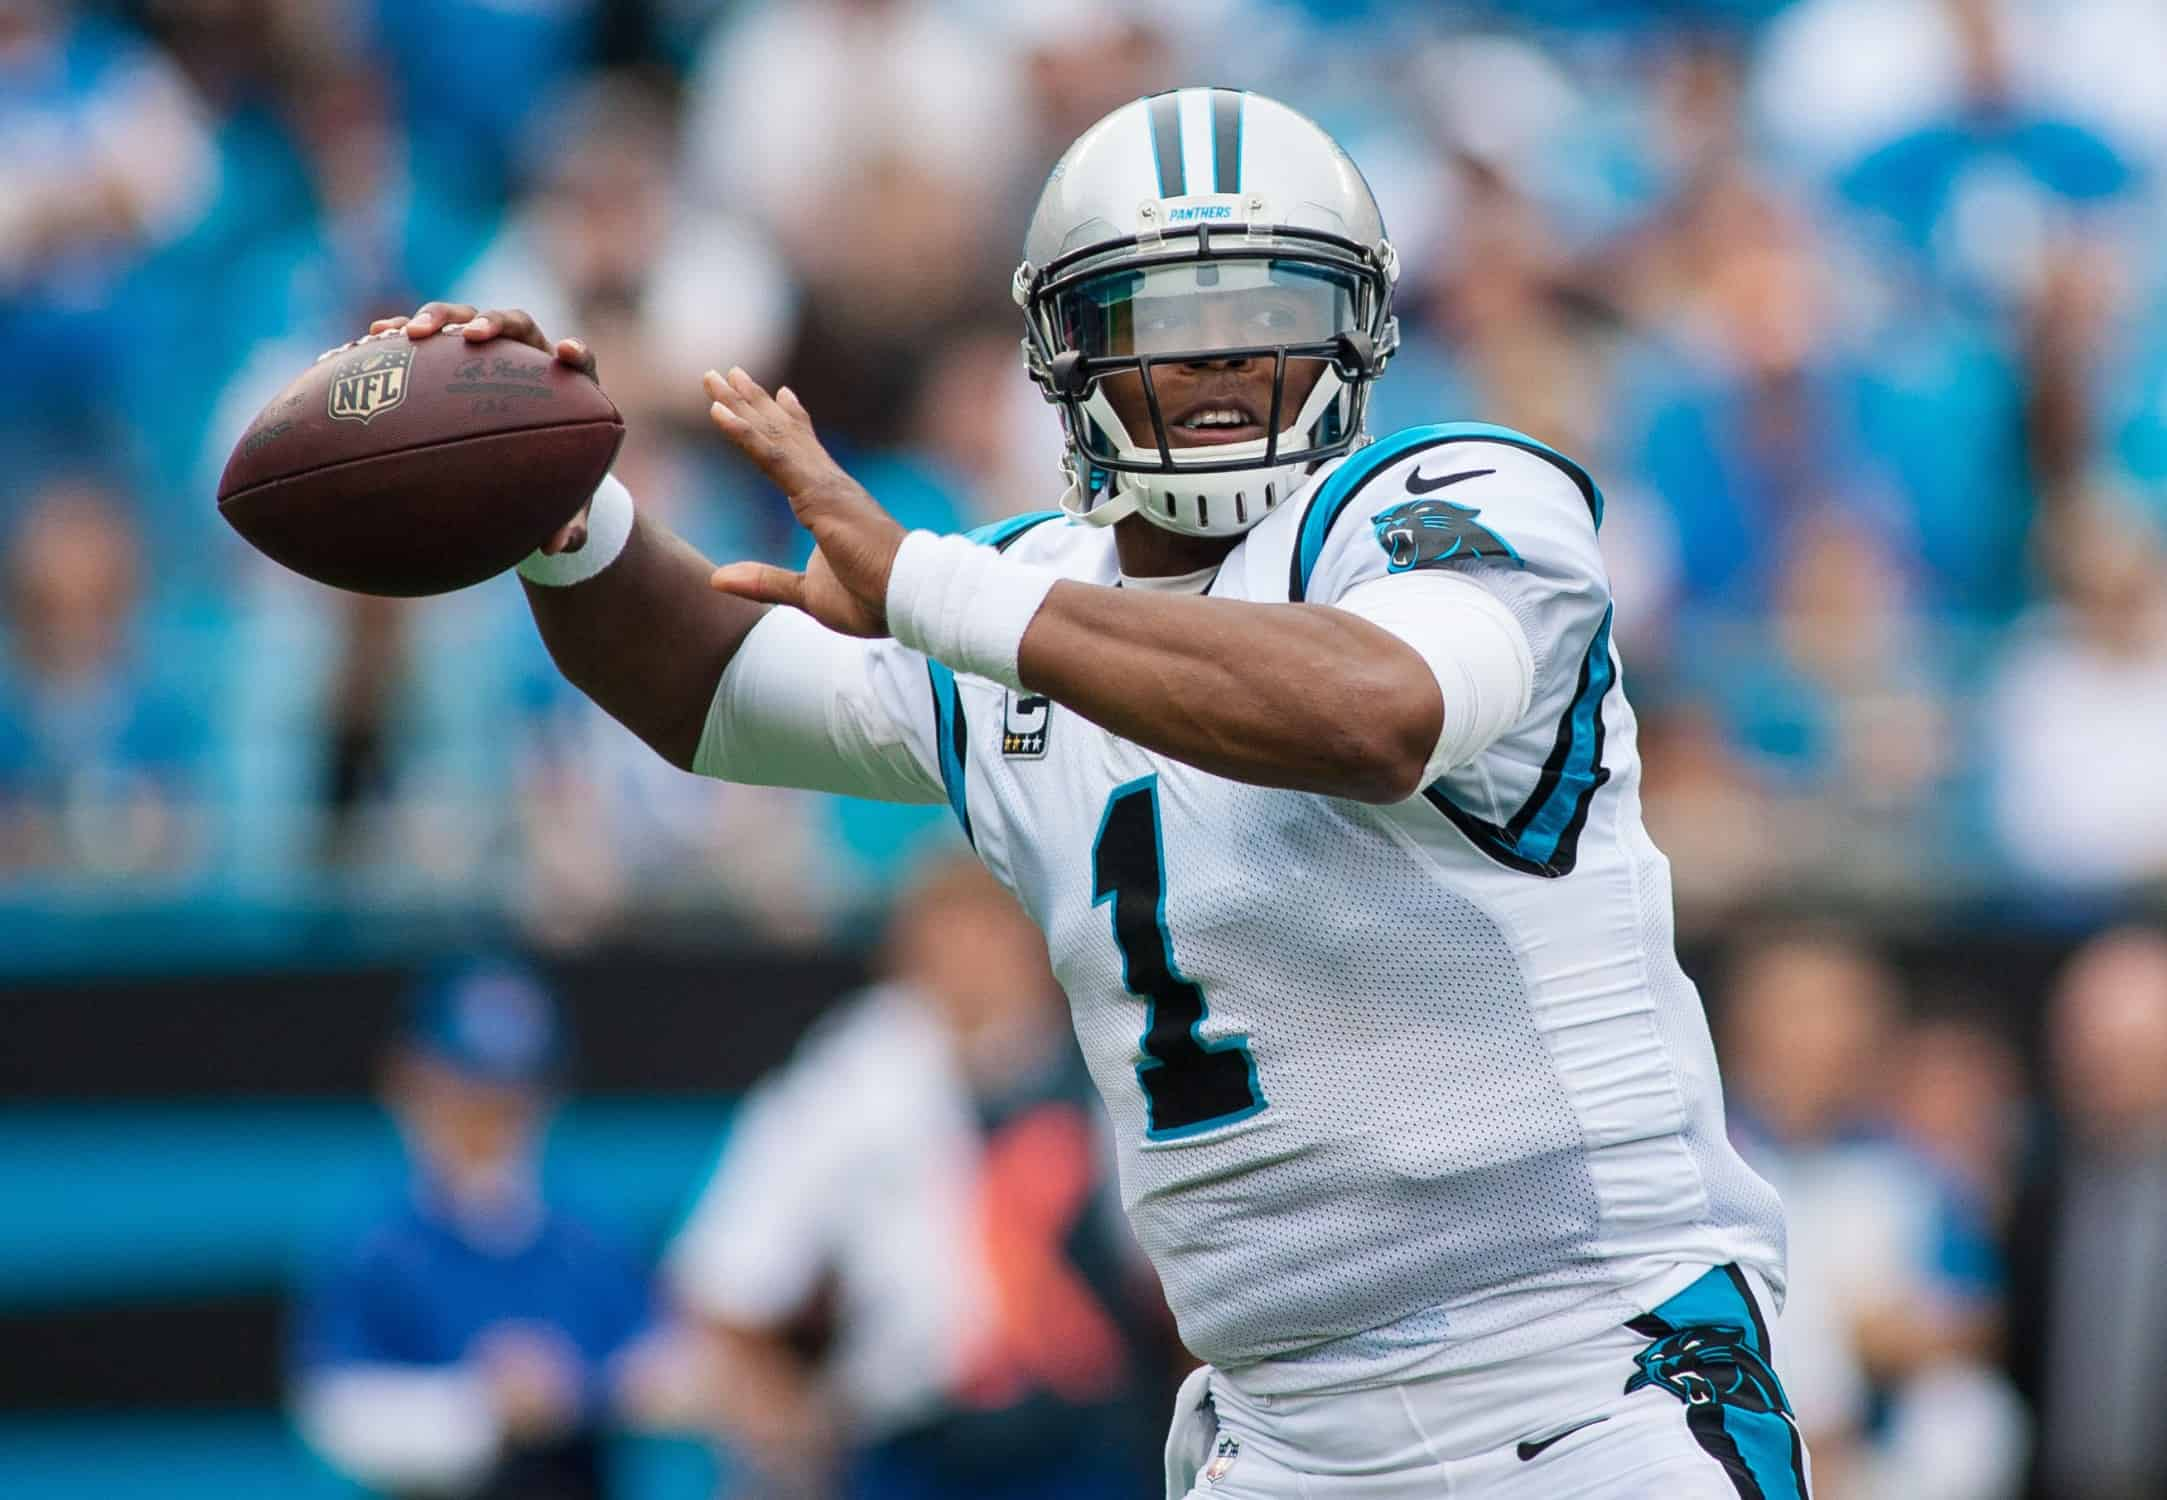 Los Angeles Chargers could be targeting Cam Newton to replace Philip Rivers